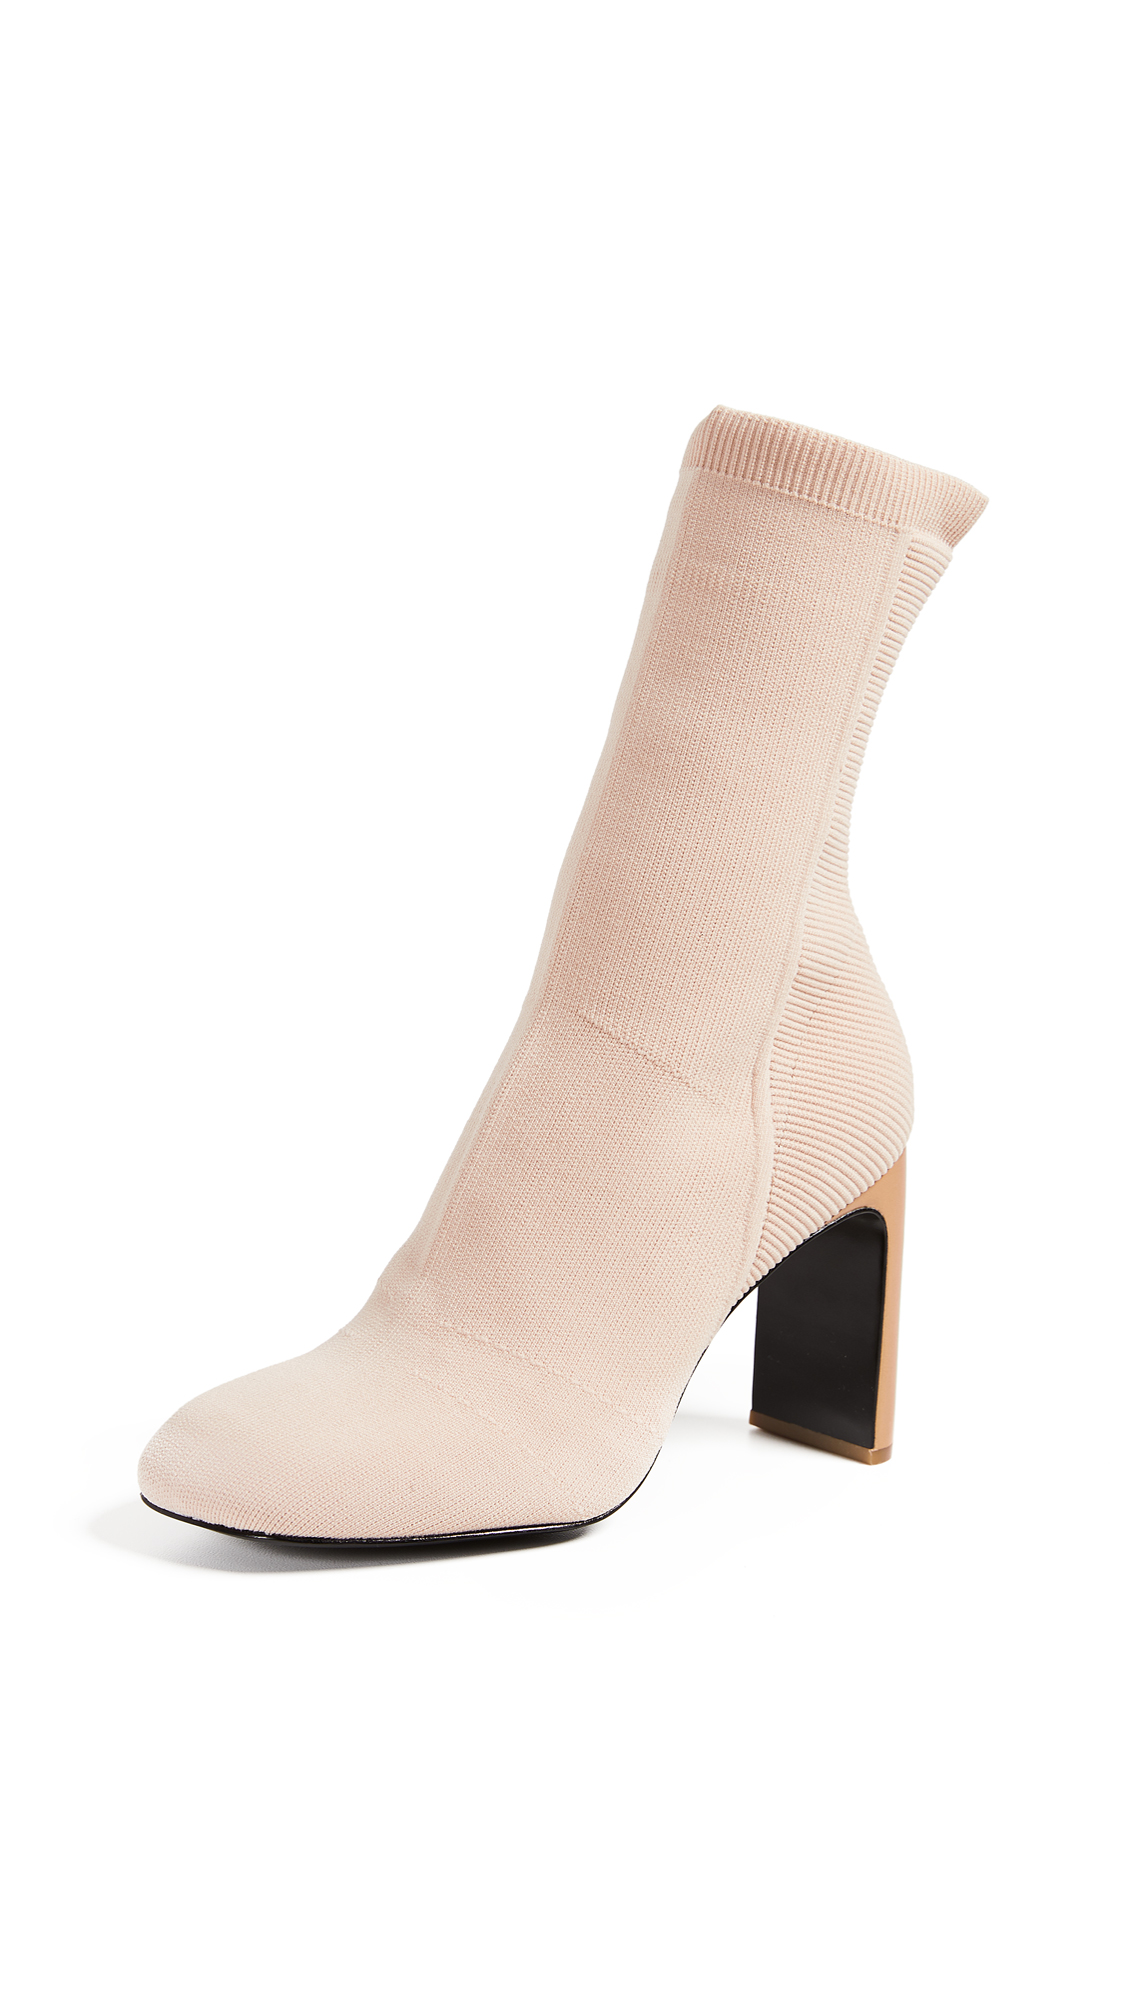 Rag & Bone Ellis Knit Boots - Nude